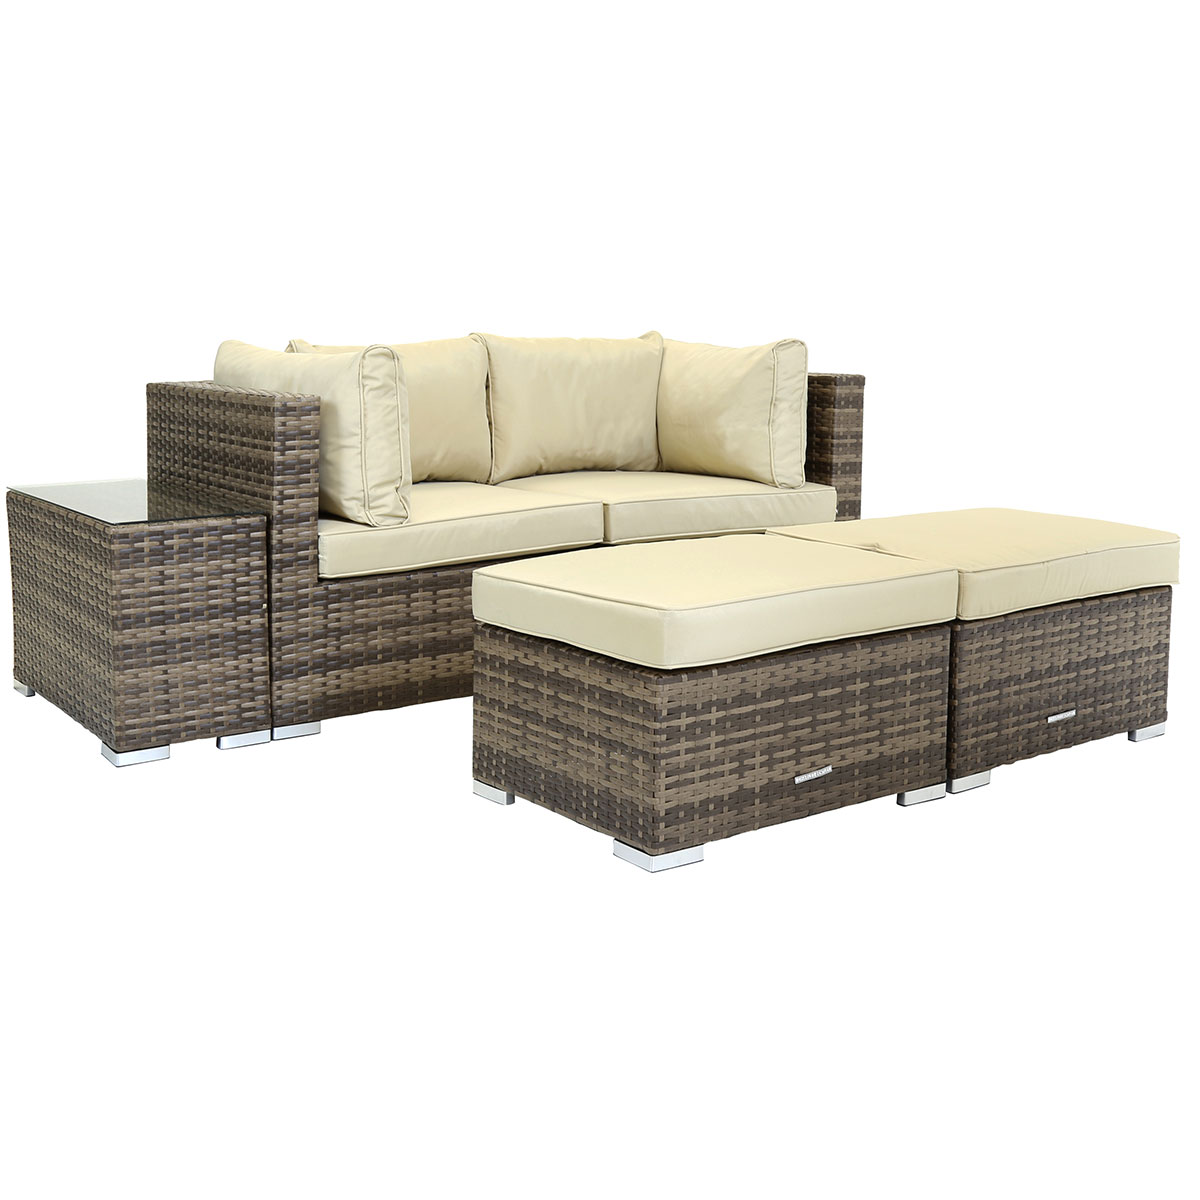 Rattan lounge  Charles Bentley 2 Seater Rattan Lounge Set Love Seat Footstools ...